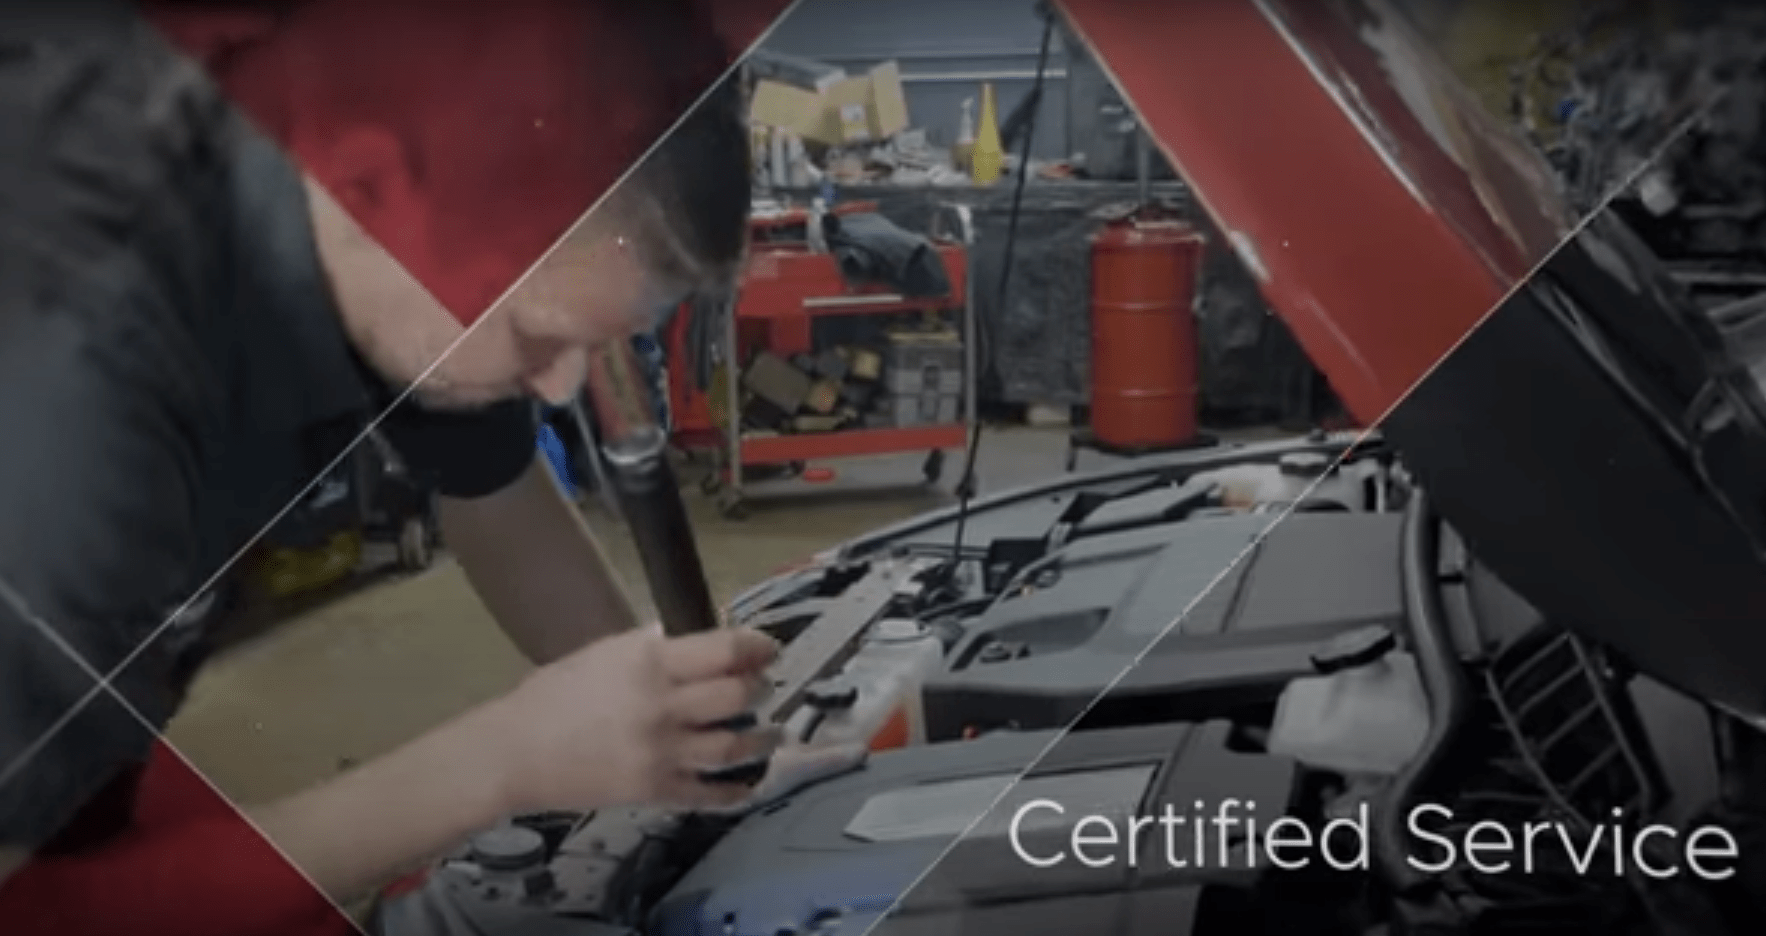 certified service video